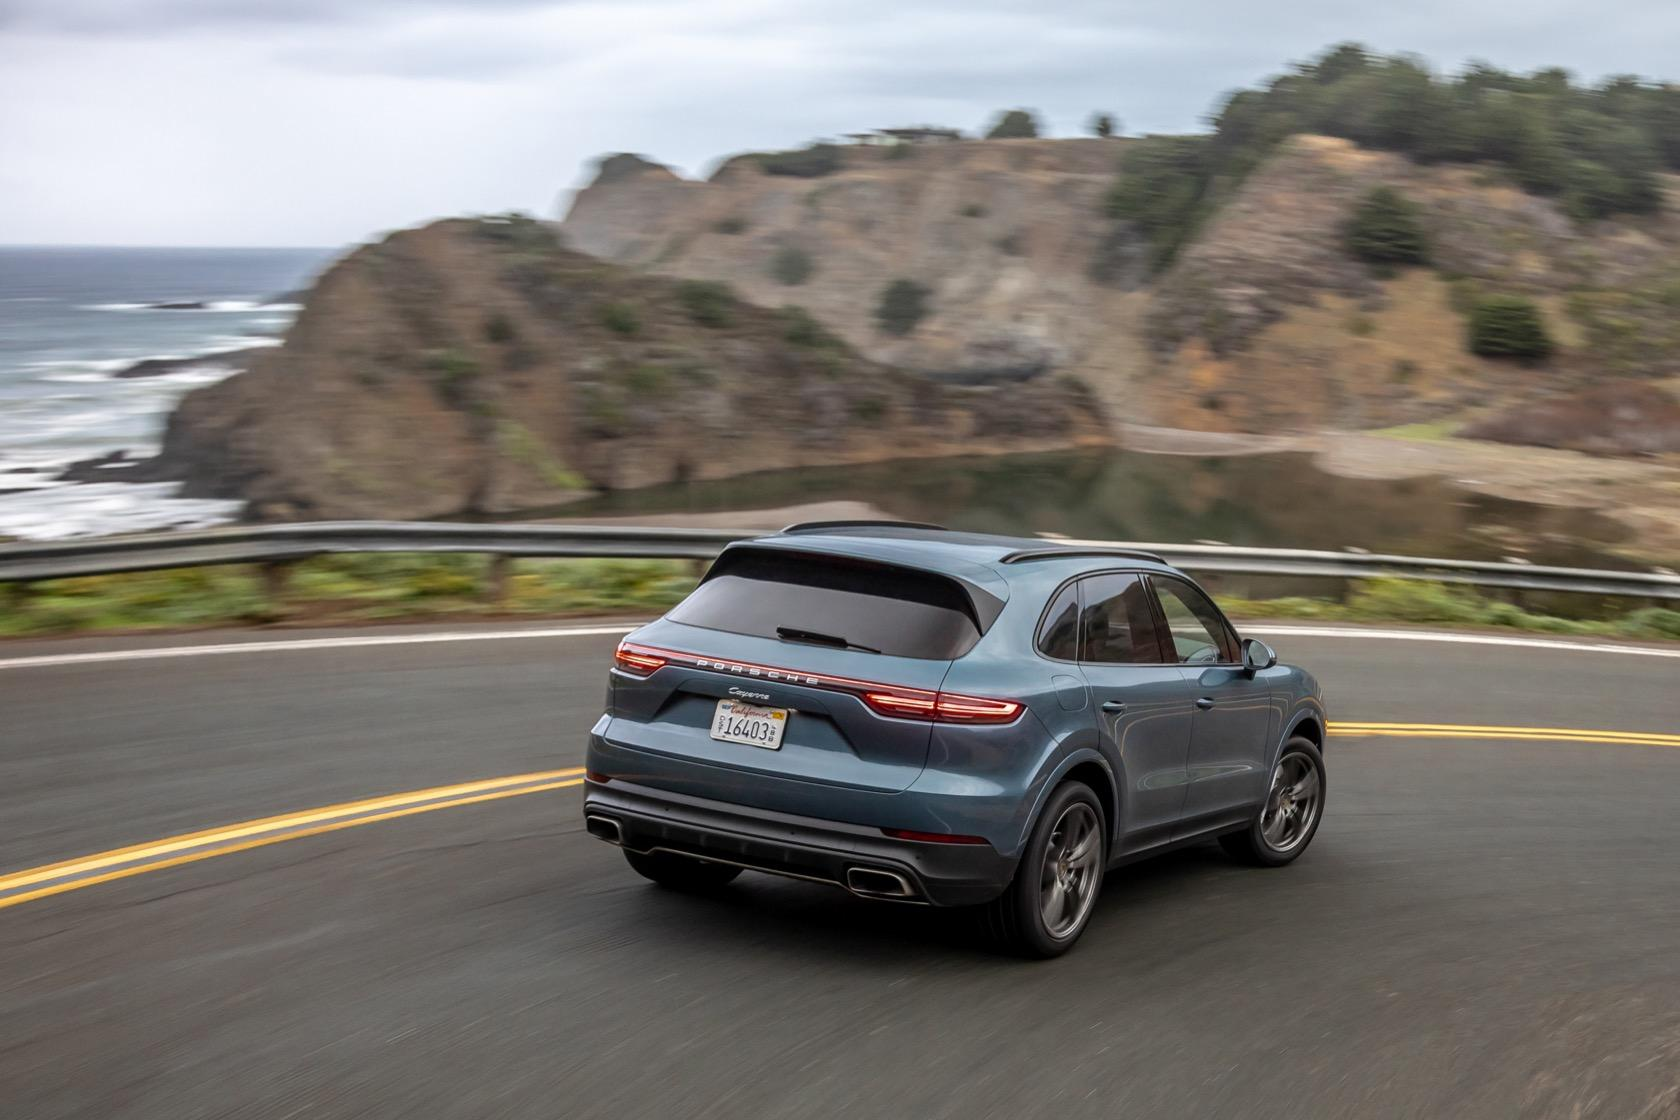 2019 Porsche Cayenne First Drive Review: My perfect spec